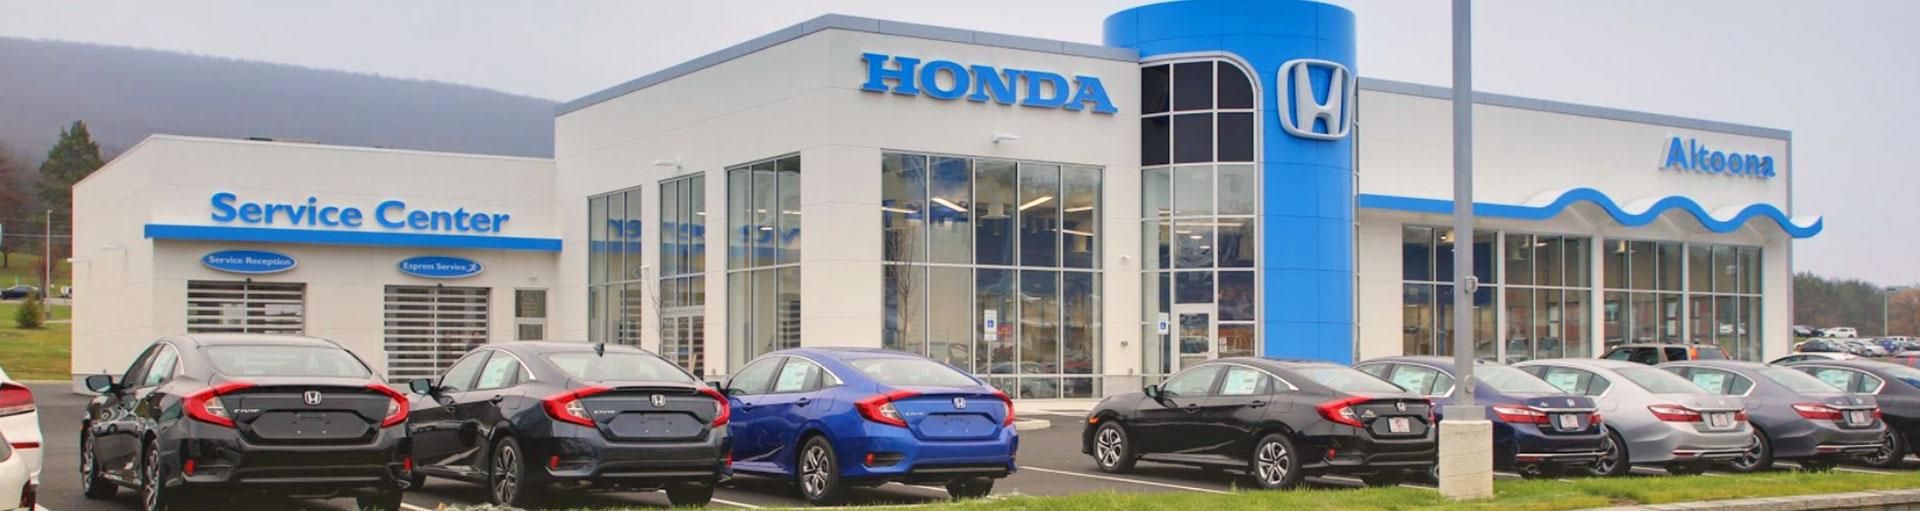 Altoona Honda Service & Parts Specials